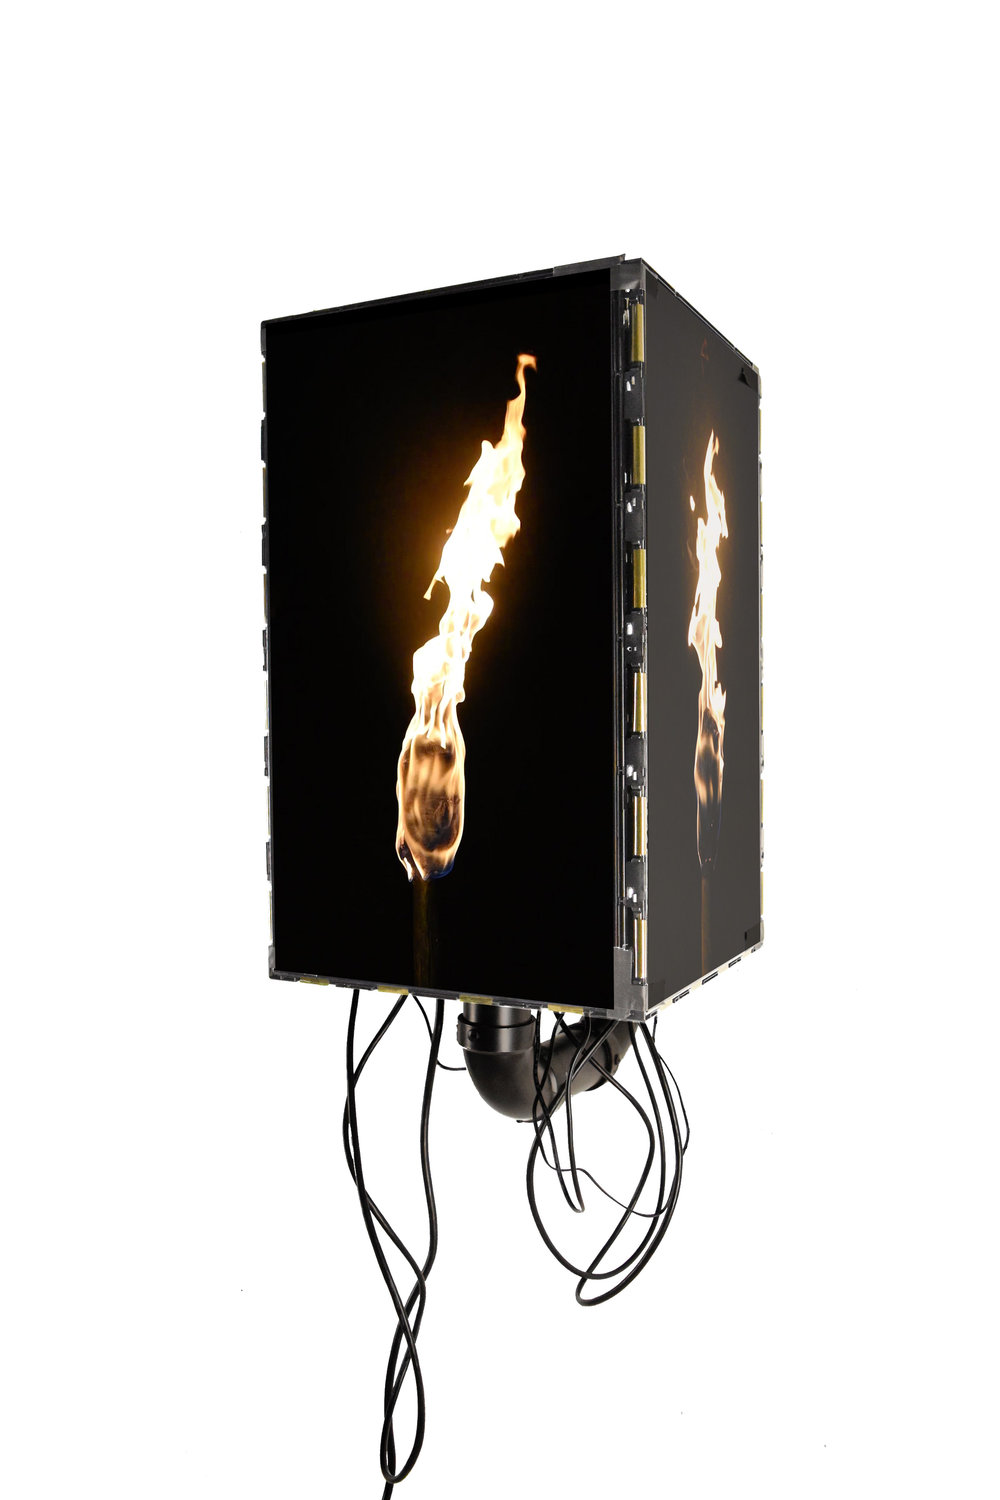 Torch I, 2016 4 channel HD video (seamless loop), 4 LED display screens, wood, steel, PVC, rubber, 28 x 13 x 20 ½ inches (dimensions variable)